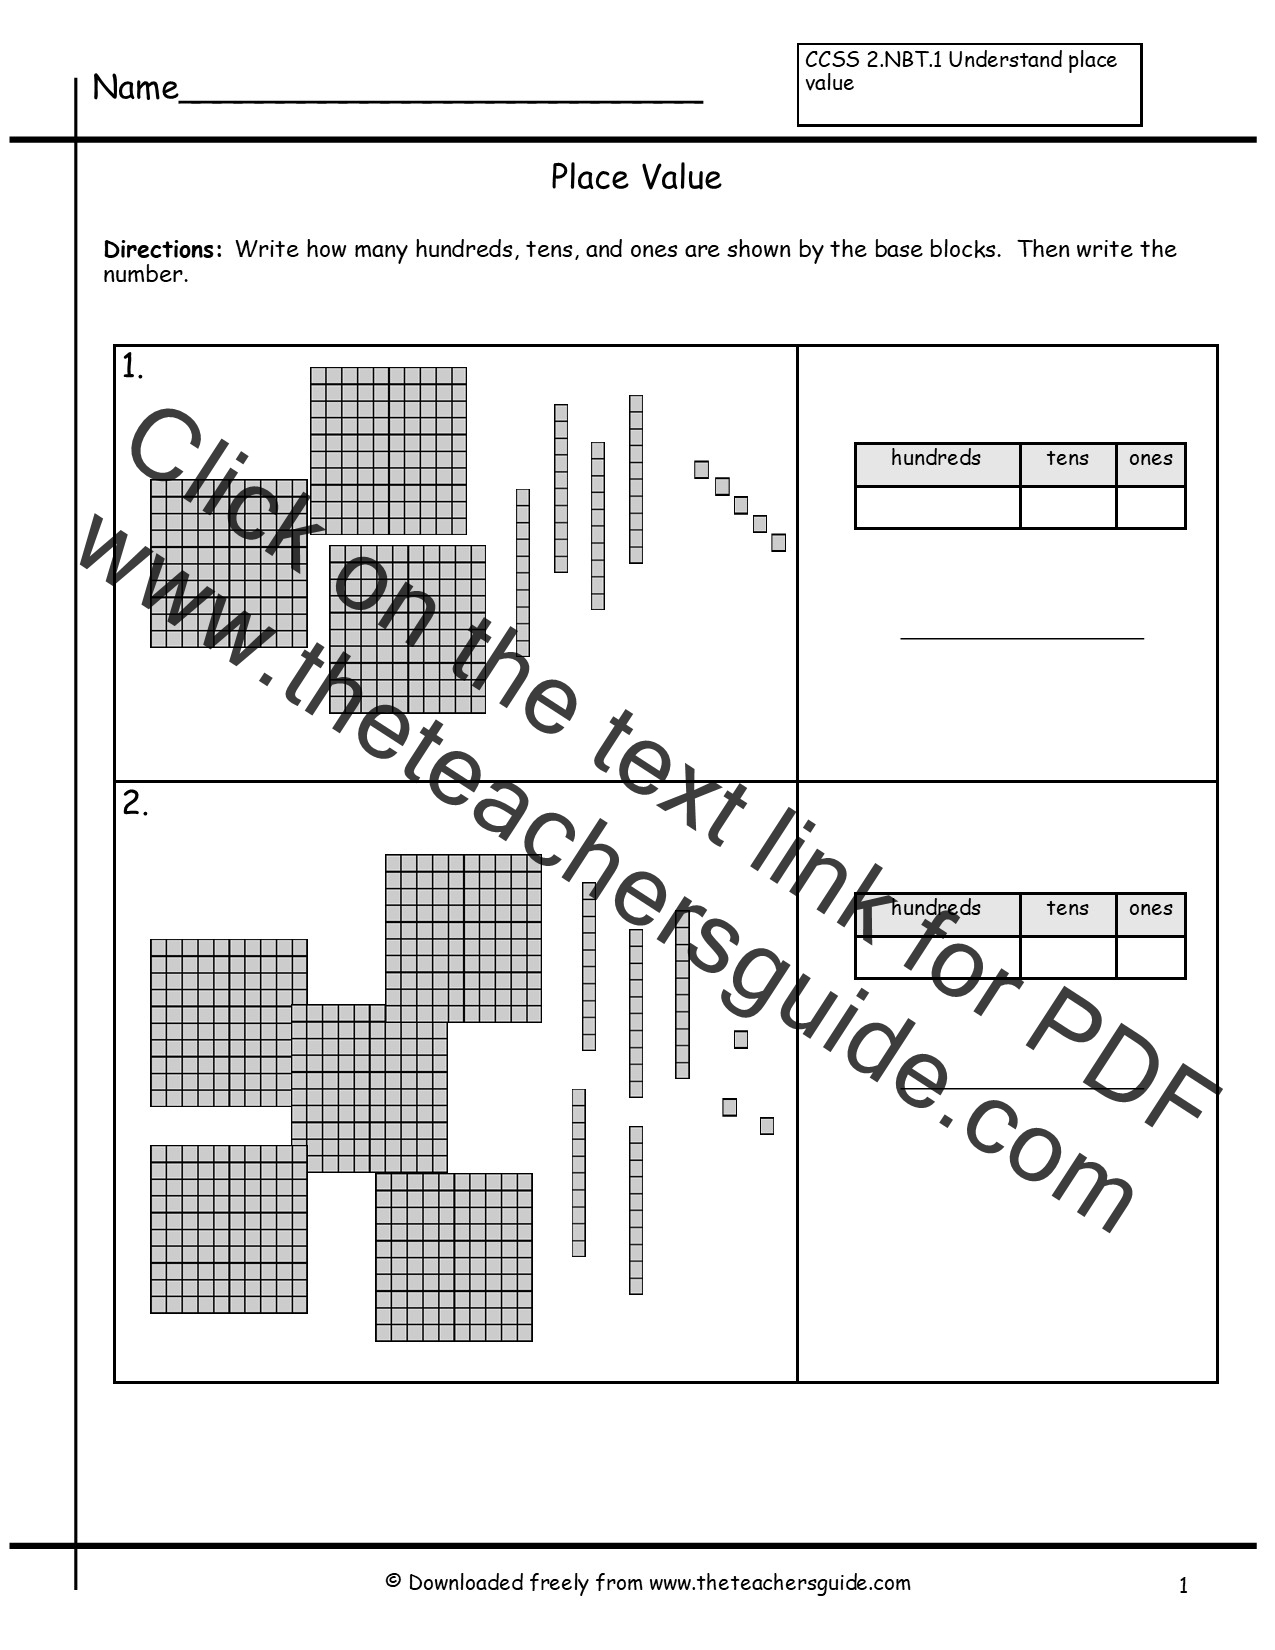 Place Value Worksheets From The Teacher S Guide